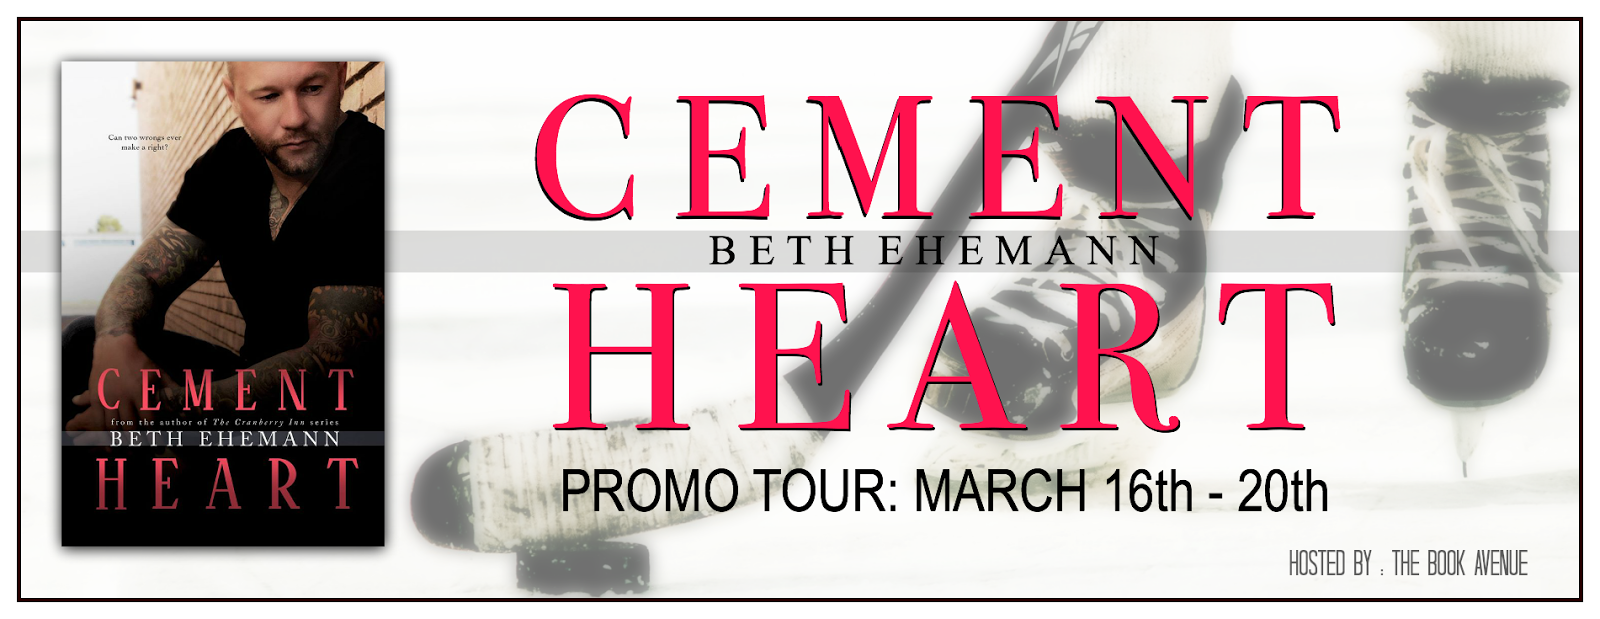 Cement Heart is LIVE! Read the Excerpt, My Review and Enter the Giveaway